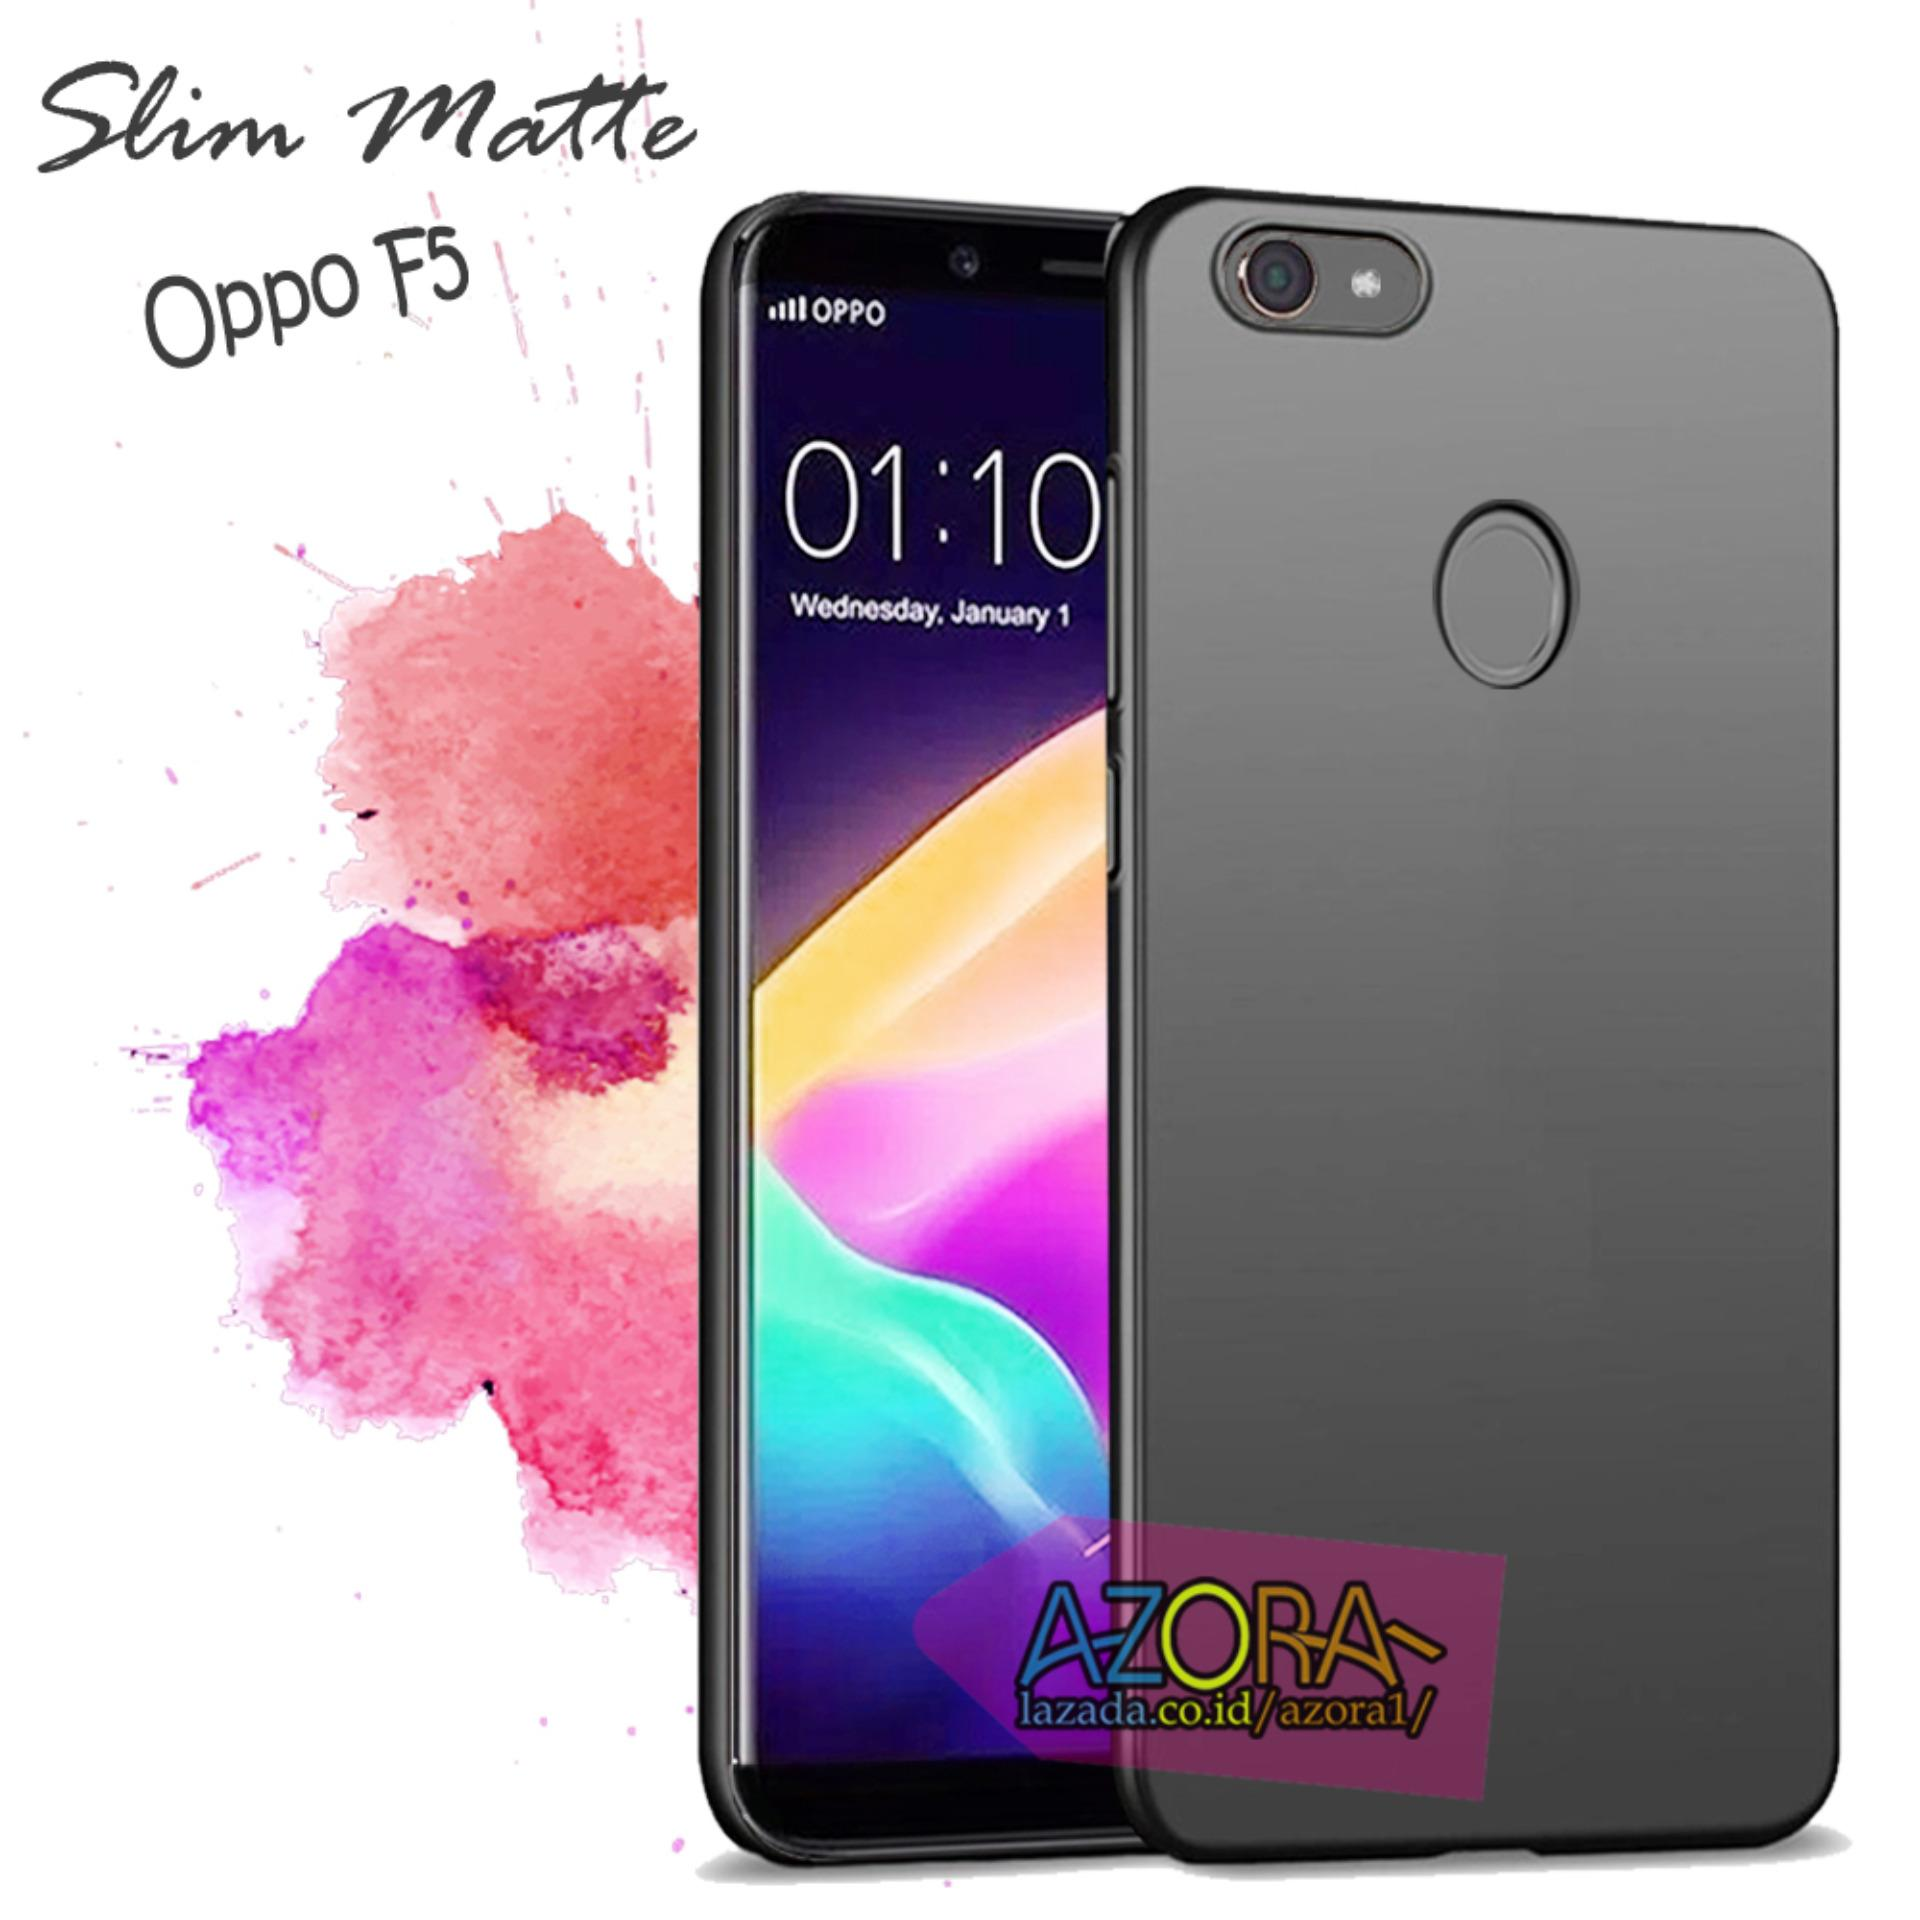 Case Slim Black Matte Oppo F5 Baby Skin Softcase Ultra Thin Jelly Silikon Babyskin